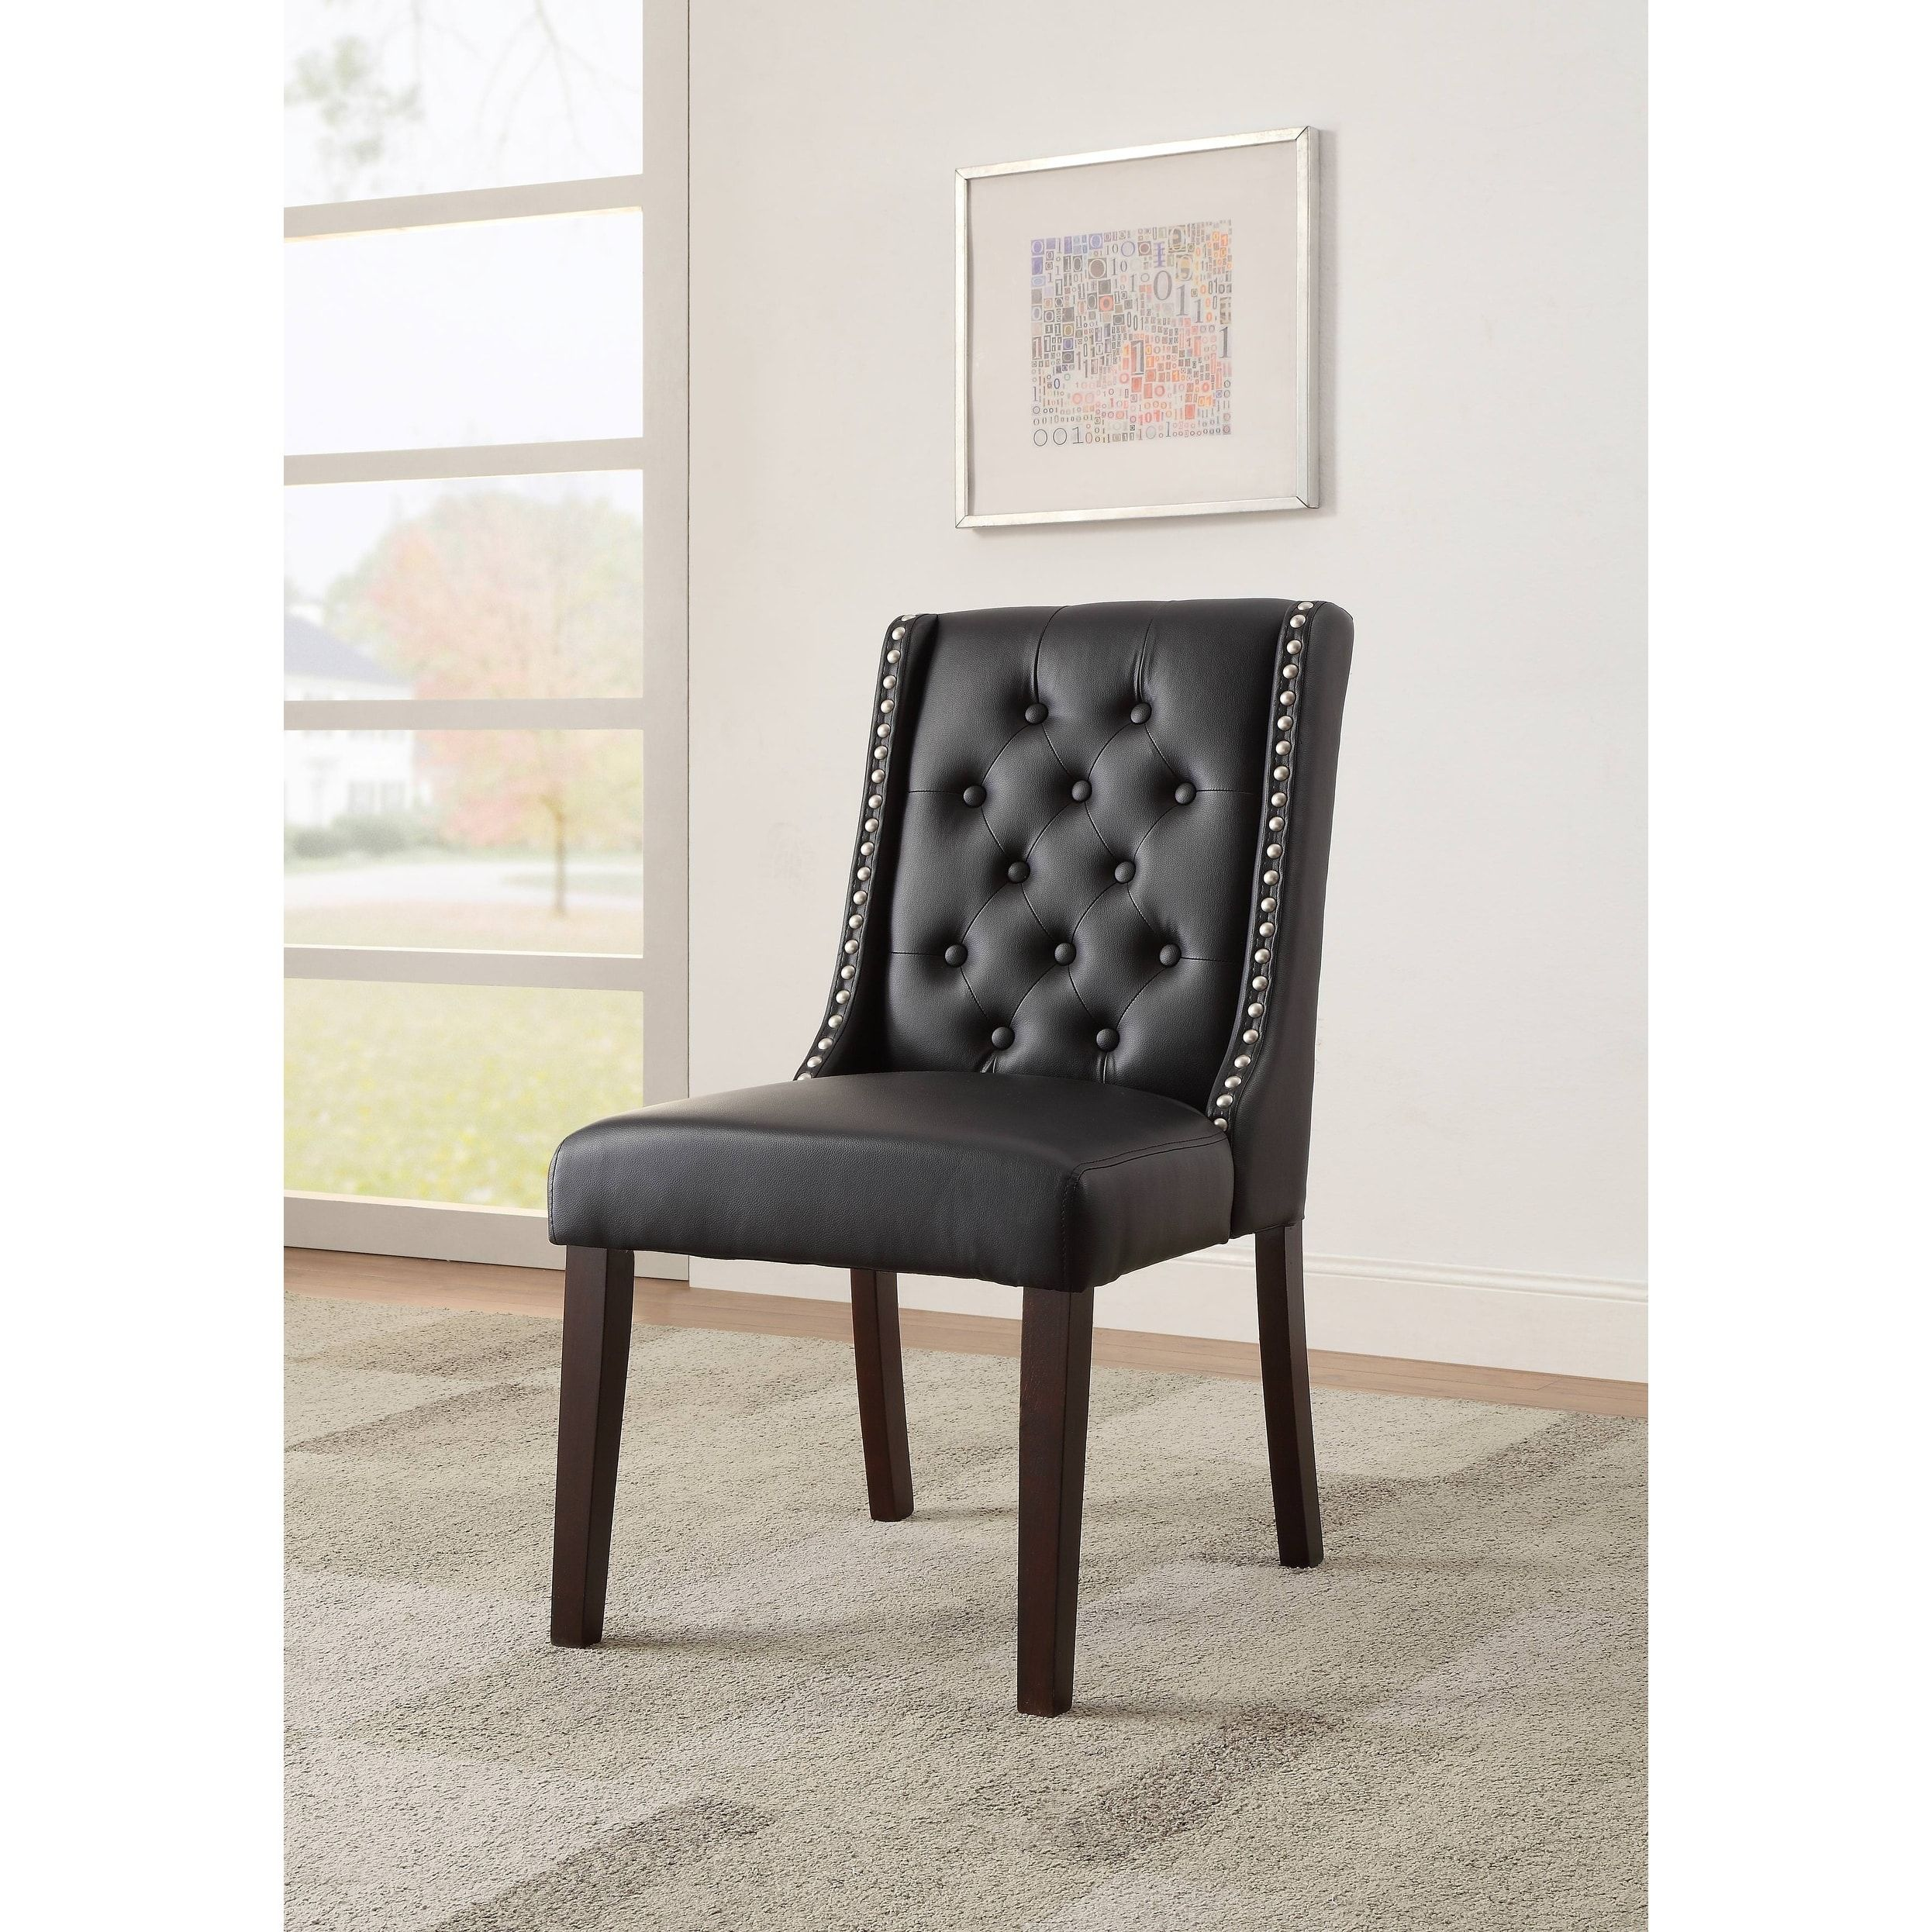 Superb Acme Casey Parsons Chair In Black Faux Leather Set Of 2 Beatyapartments Chair Design Images Beatyapartmentscom